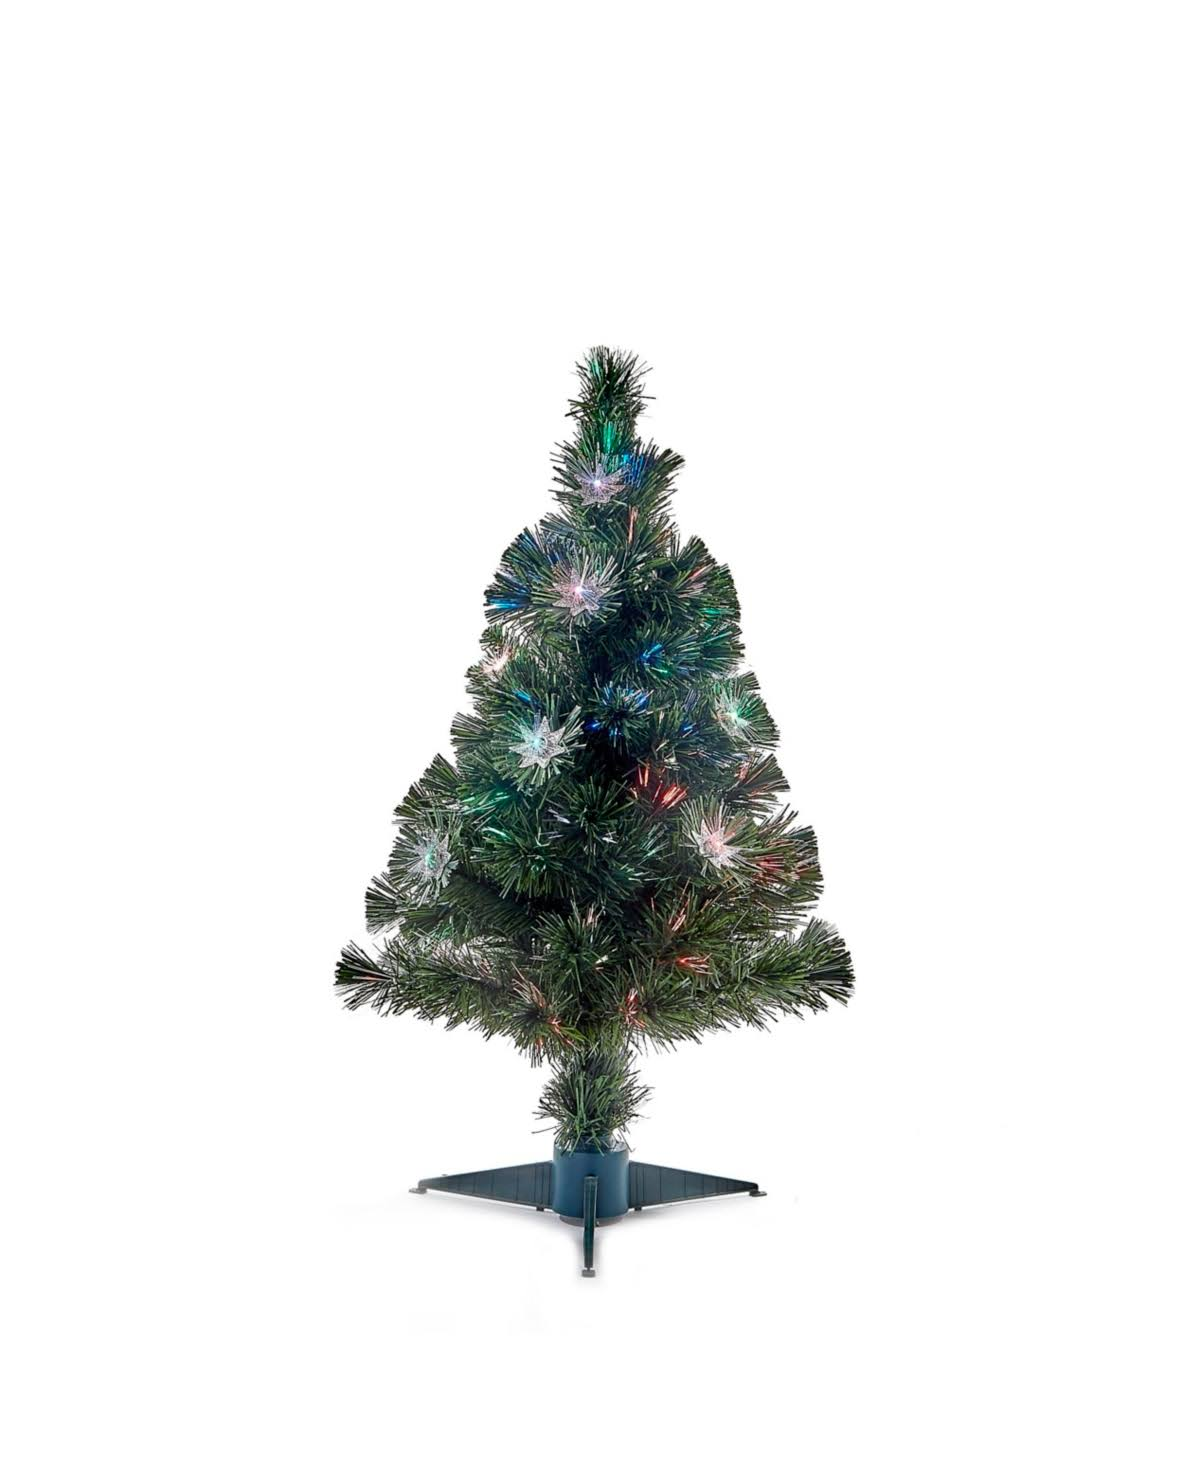 Kurt Adler 32-Inch Fiber Optic Tree with Comet Effect, Green